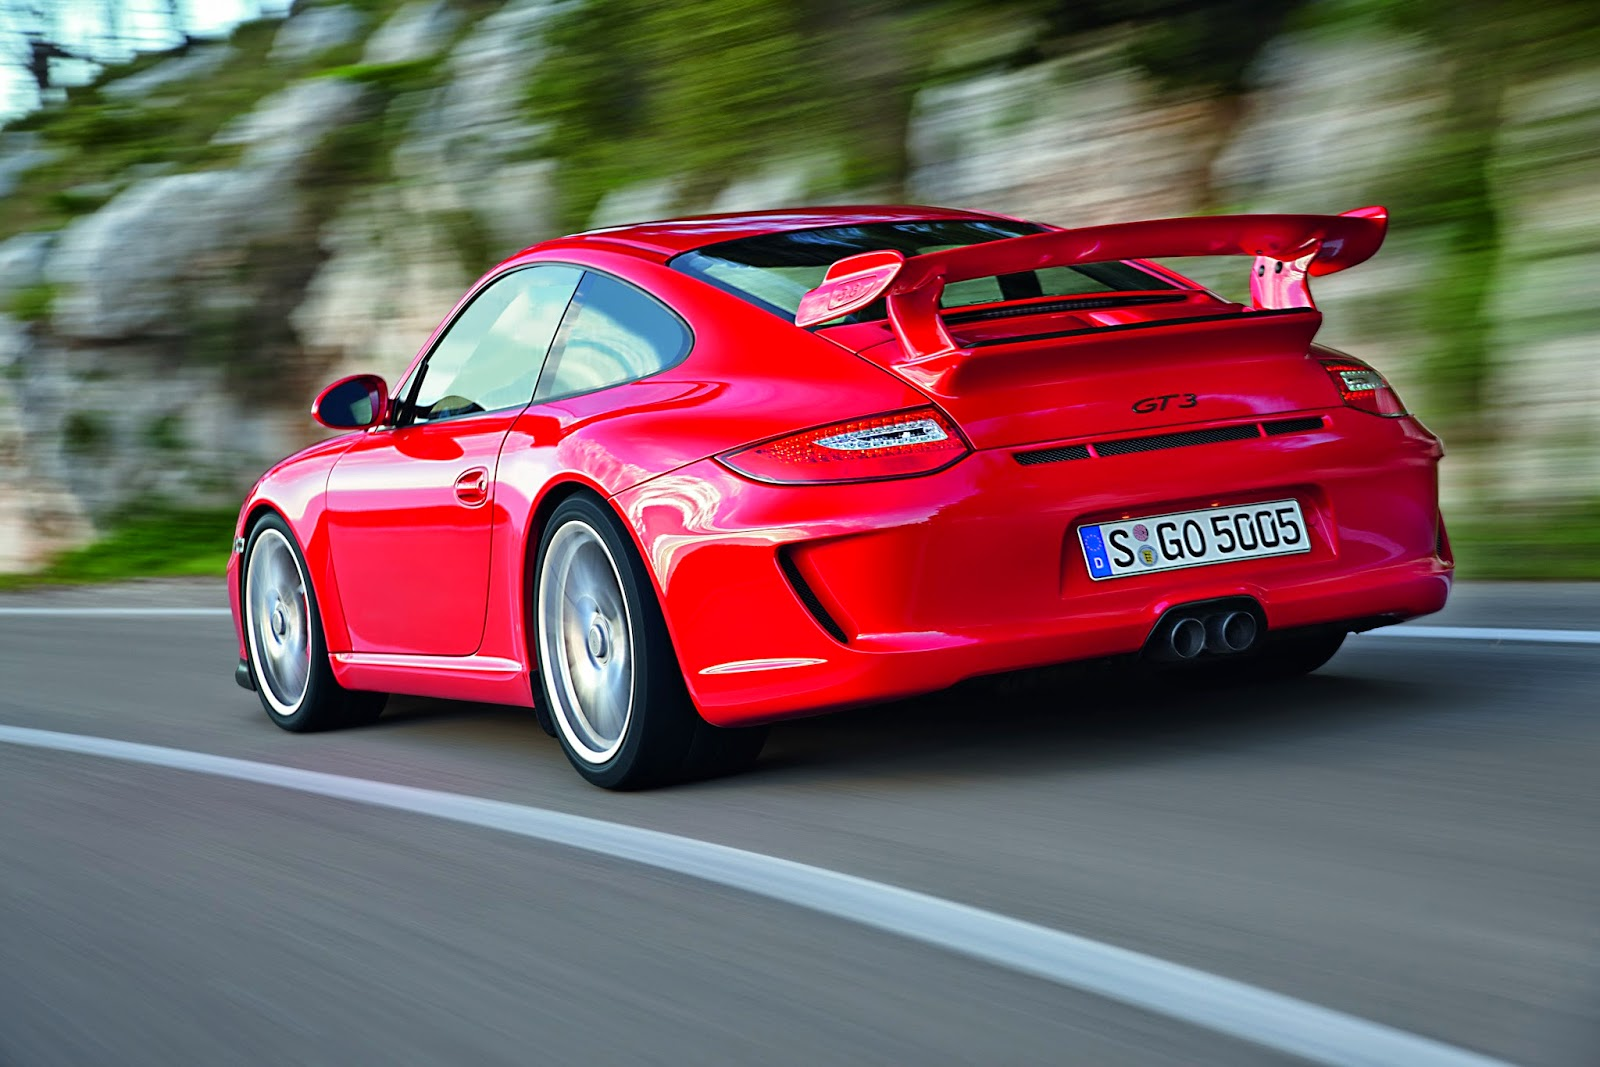 New Porsche Cayman Gt4 Vs Used 997 911 Gt3 W Poll